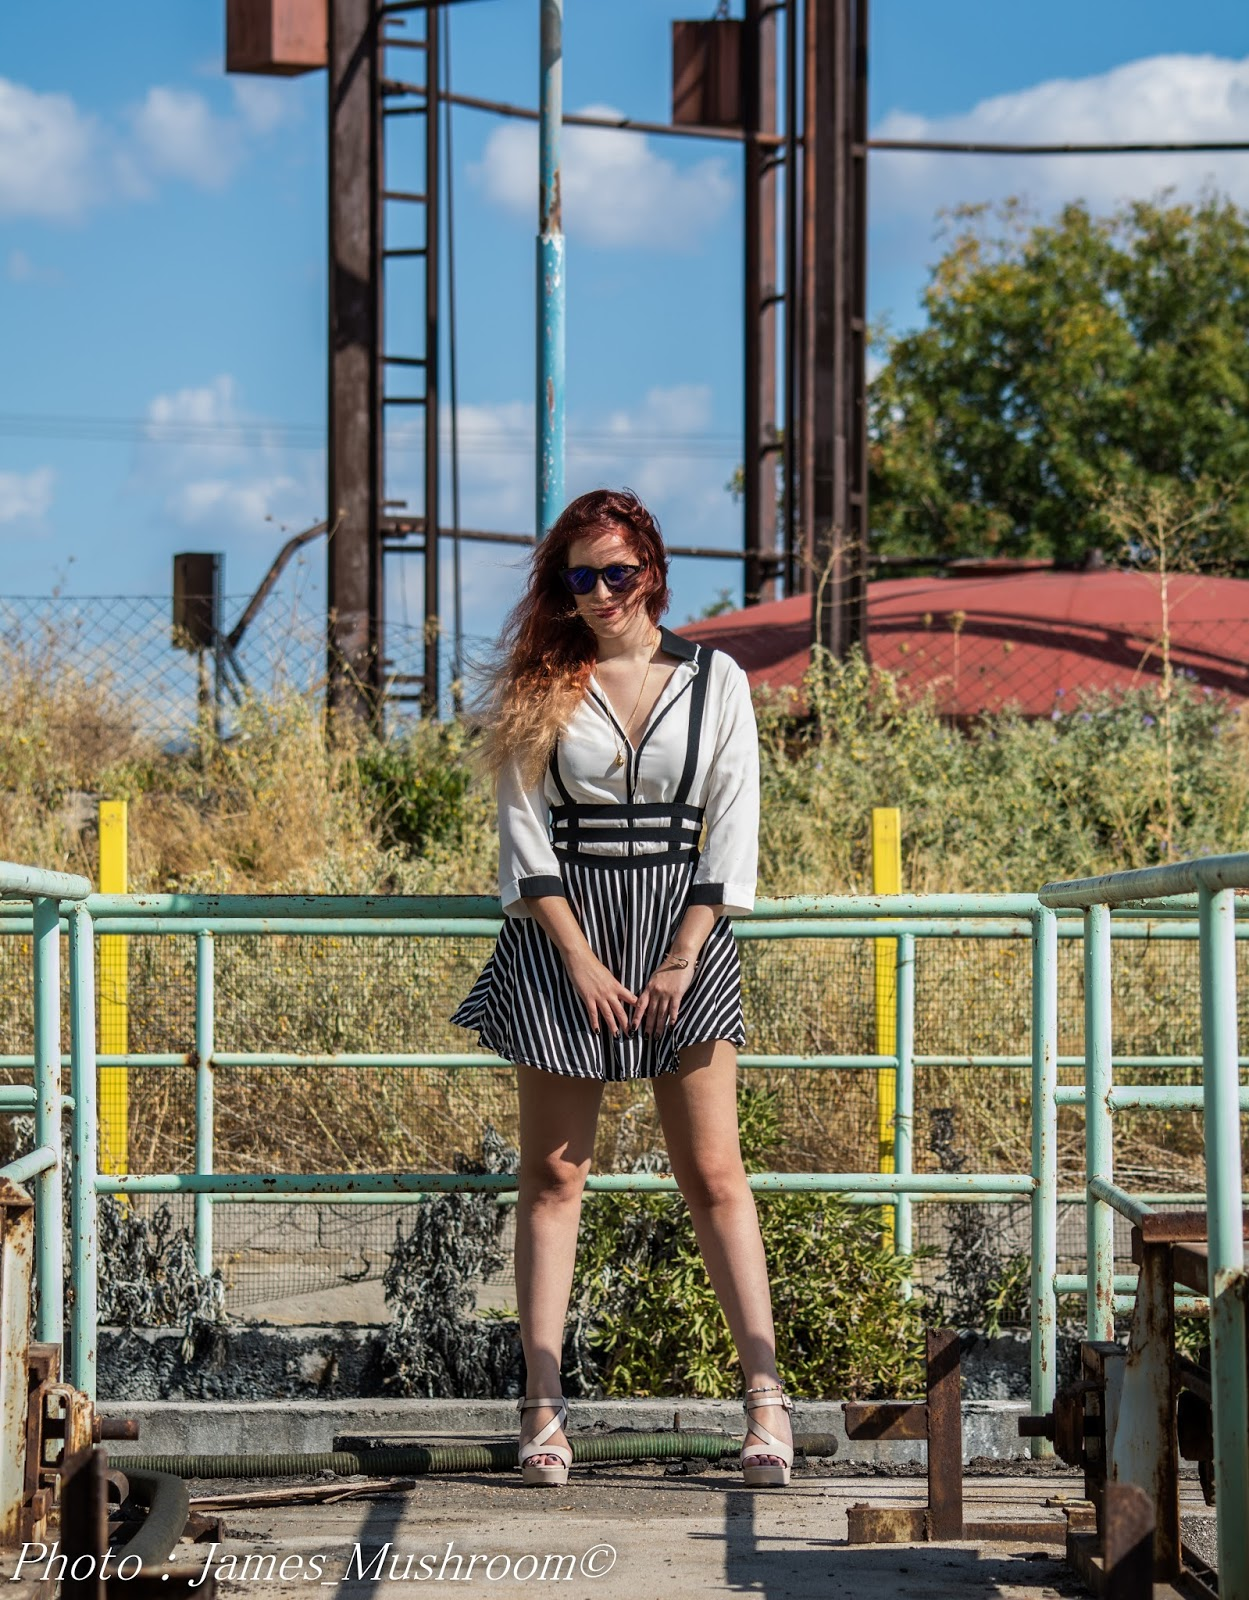 spotlights on the redhead, redhead, model, blogger, review, pretty, anna keni, anna, choies,migato,sili,sunglasses, skirt,black, white, stripes,Black and White Stripe Lattice Cut Out High Waisted, Shoulder-straps, Overall Skirt